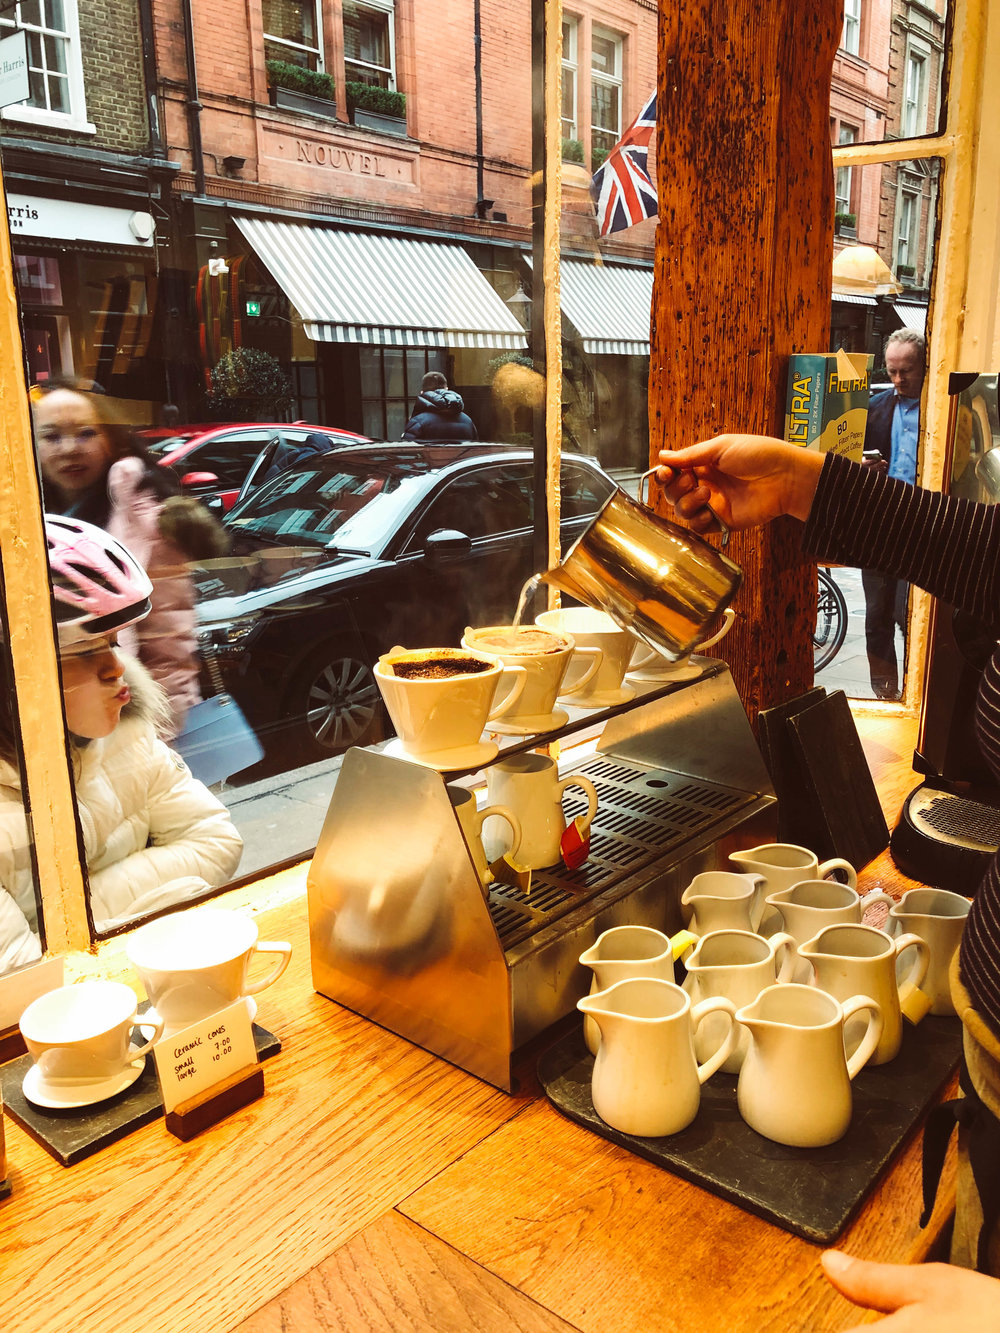 Monmouth Coffee London - pour over coffee being made in the window with pitchers of samples below